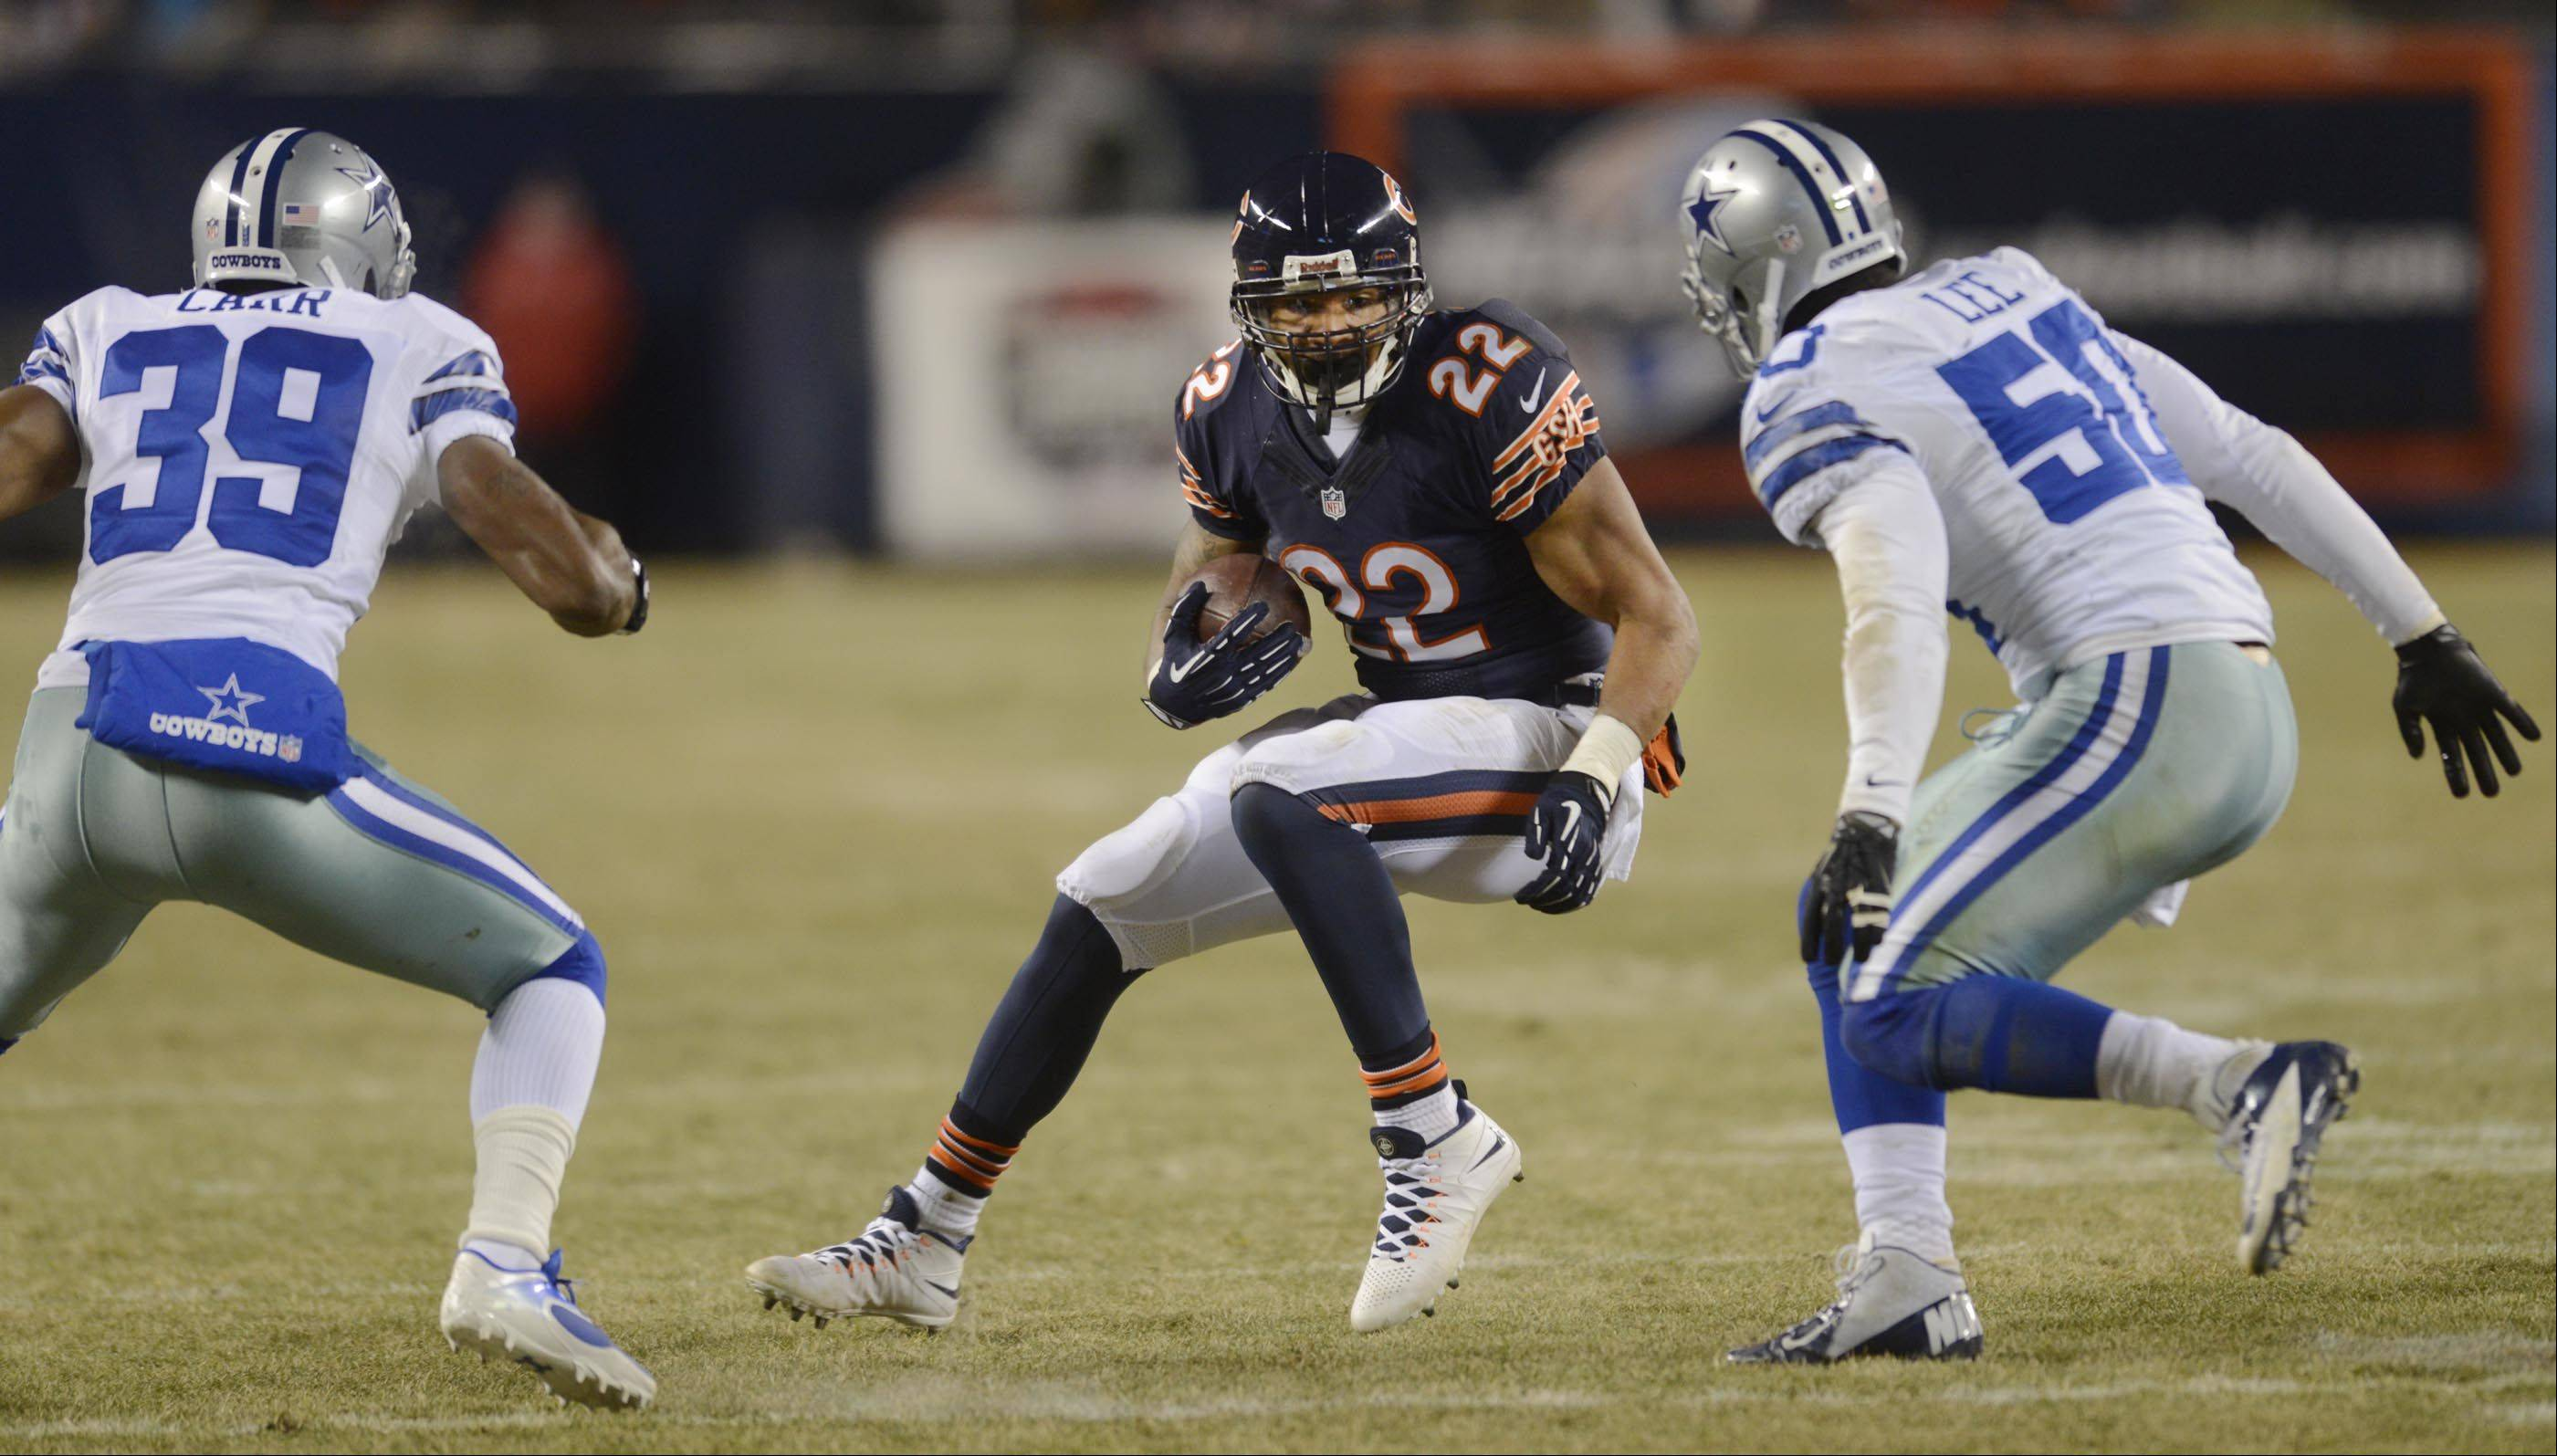 Chicago Bears running back Matt Forte looks for a hole against Dallas Cowboys cornerback Brandon Carr and linebacker Sean Lee.